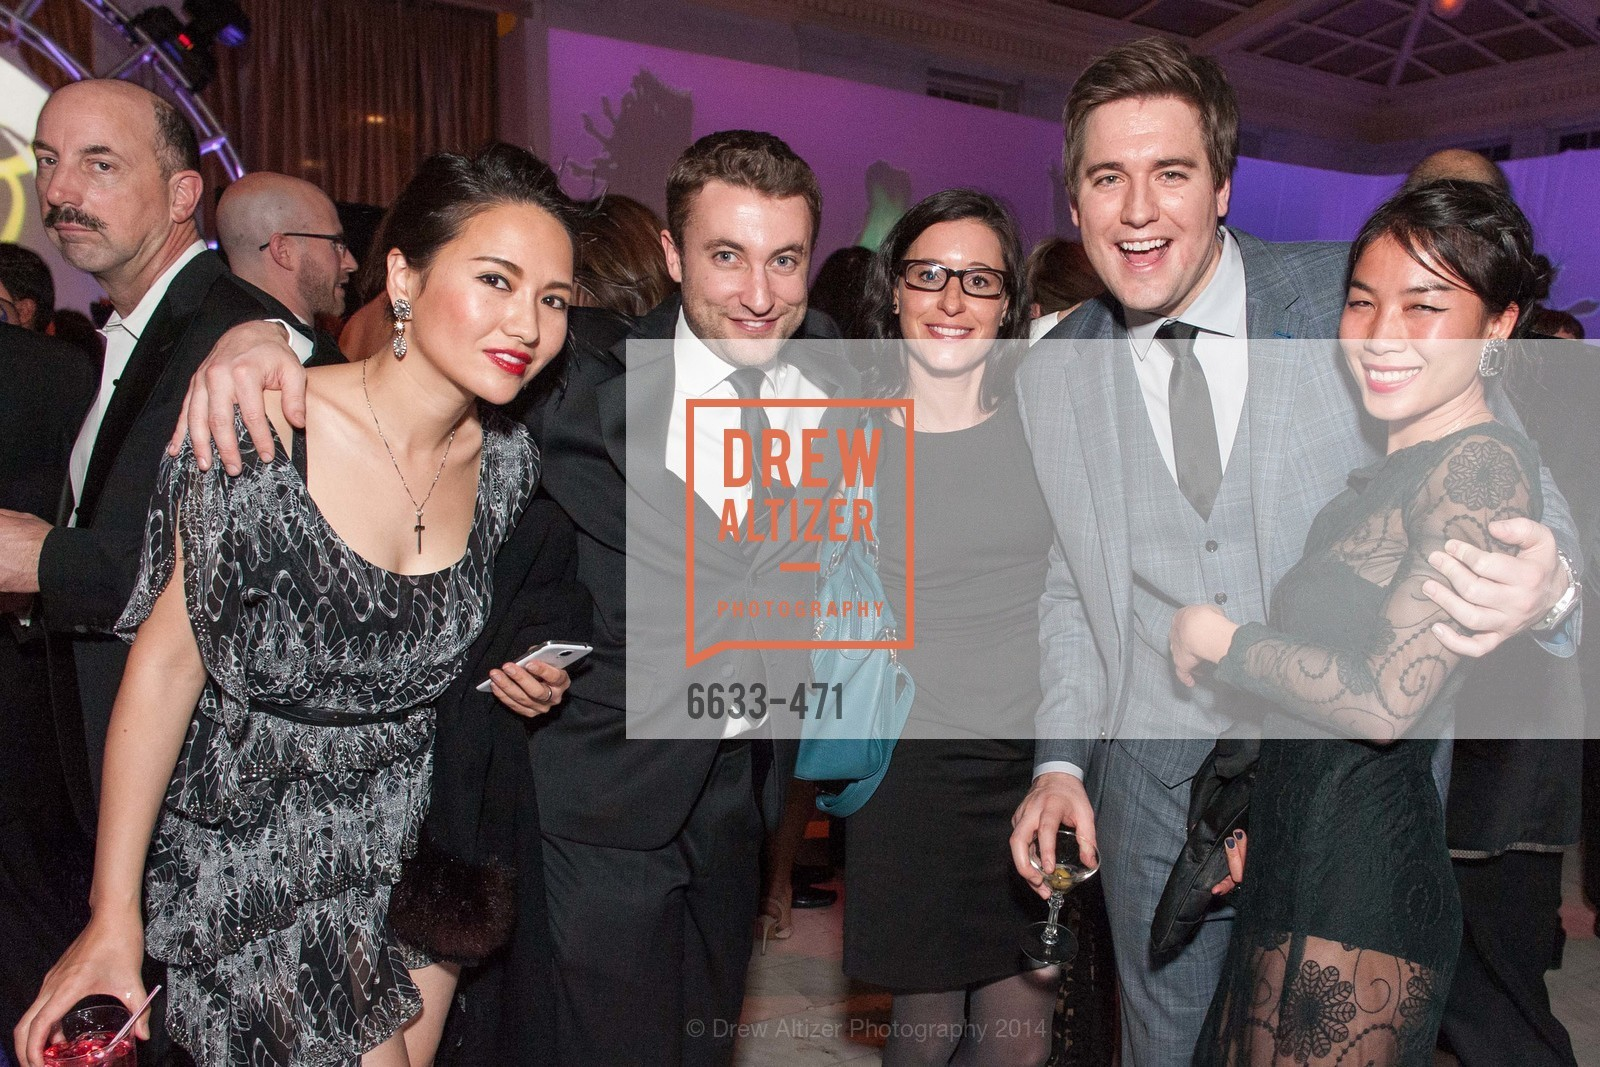 Mia Xu, James Ellott, David Fowler, Roxanne Lee, SAN FRANCISCO BALLET Opening Night Gala: PHENOMENAL - After Party, US. War memorial opera house, January 22nd, 2014,Drew Altizer, Drew Altizer Photography, full-service event agency, private events, San Francisco photographer, photographer California